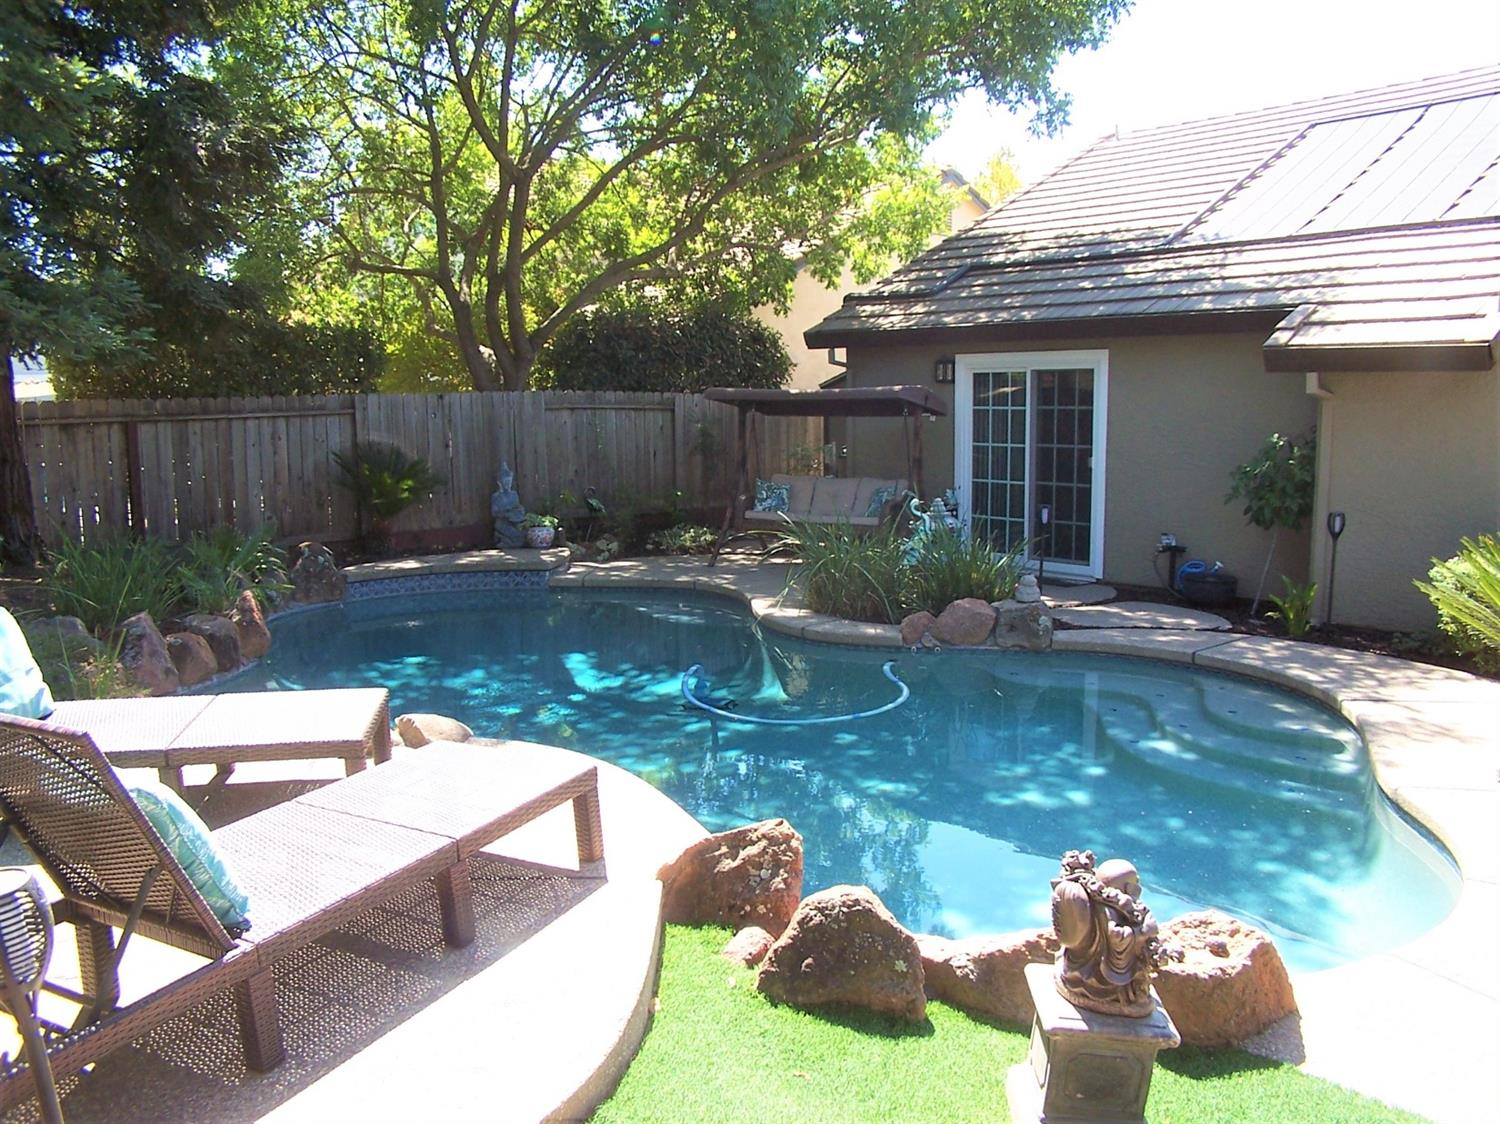 Photo 2 for Listing #221114141